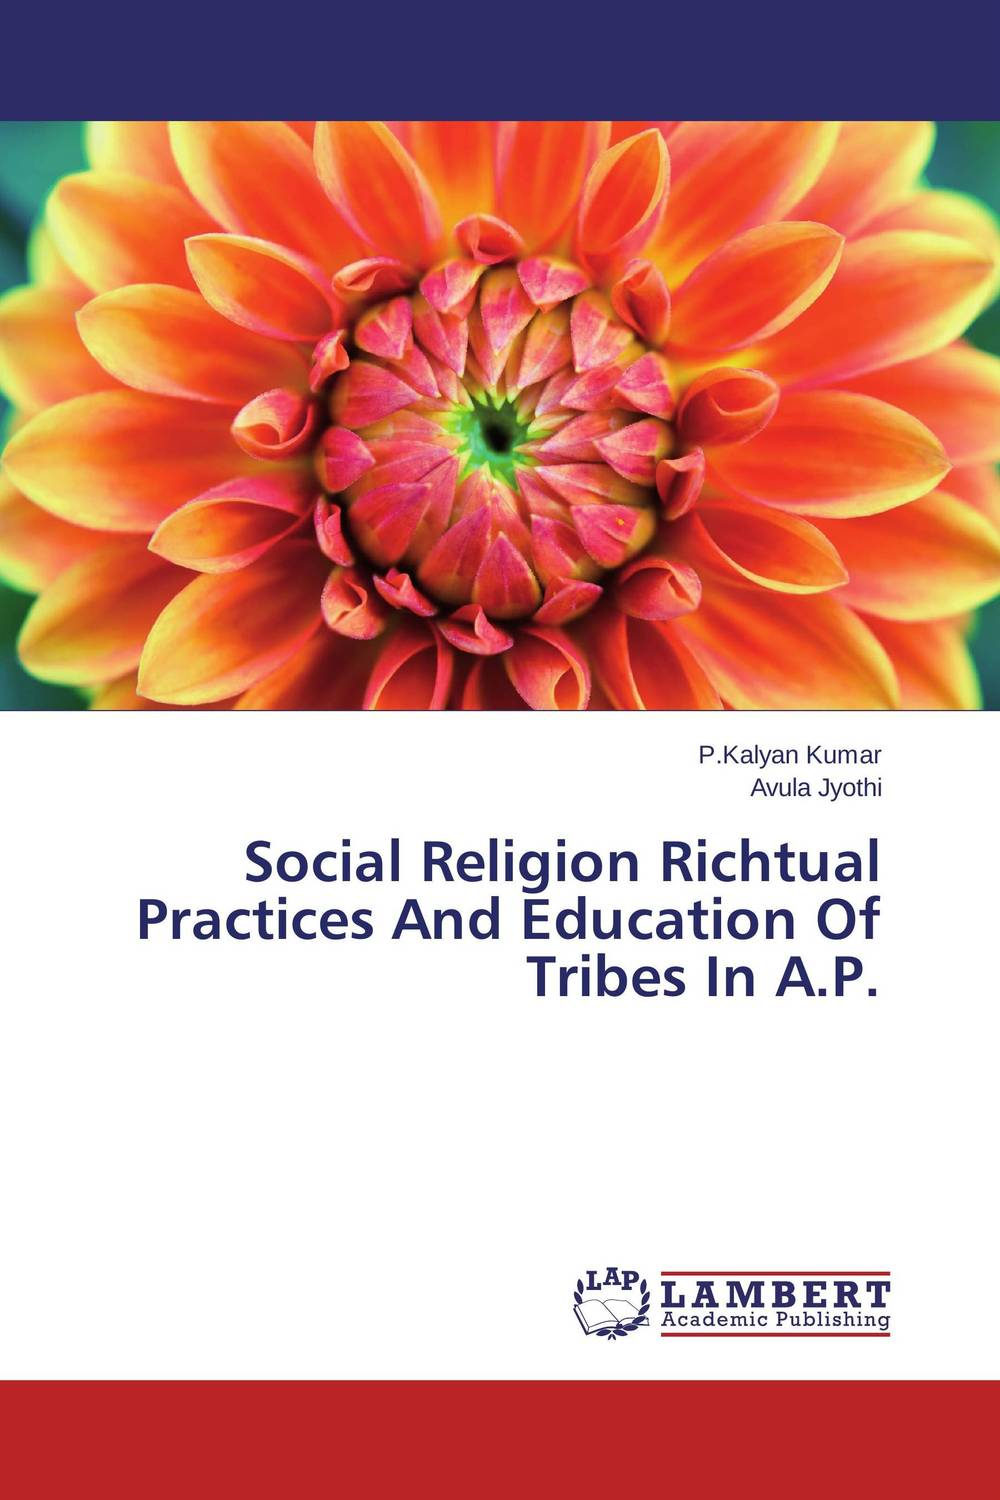 Social Religion Richtual Practices And Education Of Tribes In A.P. bir pal singh social inequality and exclusion of scheduled tribes in india